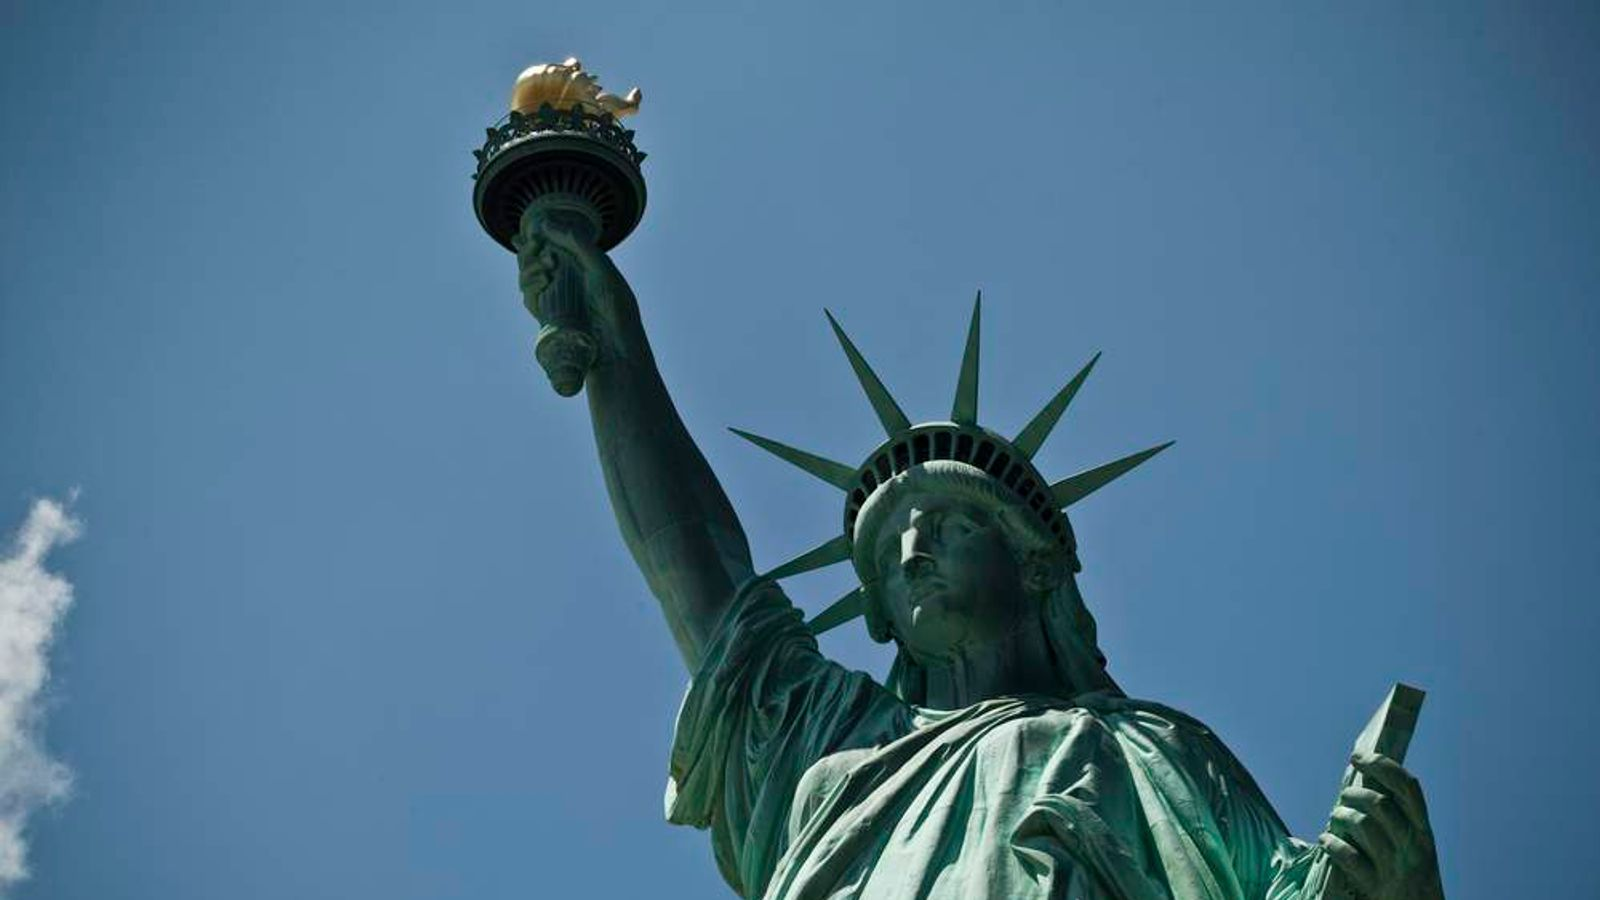 Statue of Liberty reopens as US celebrates Fourth of July